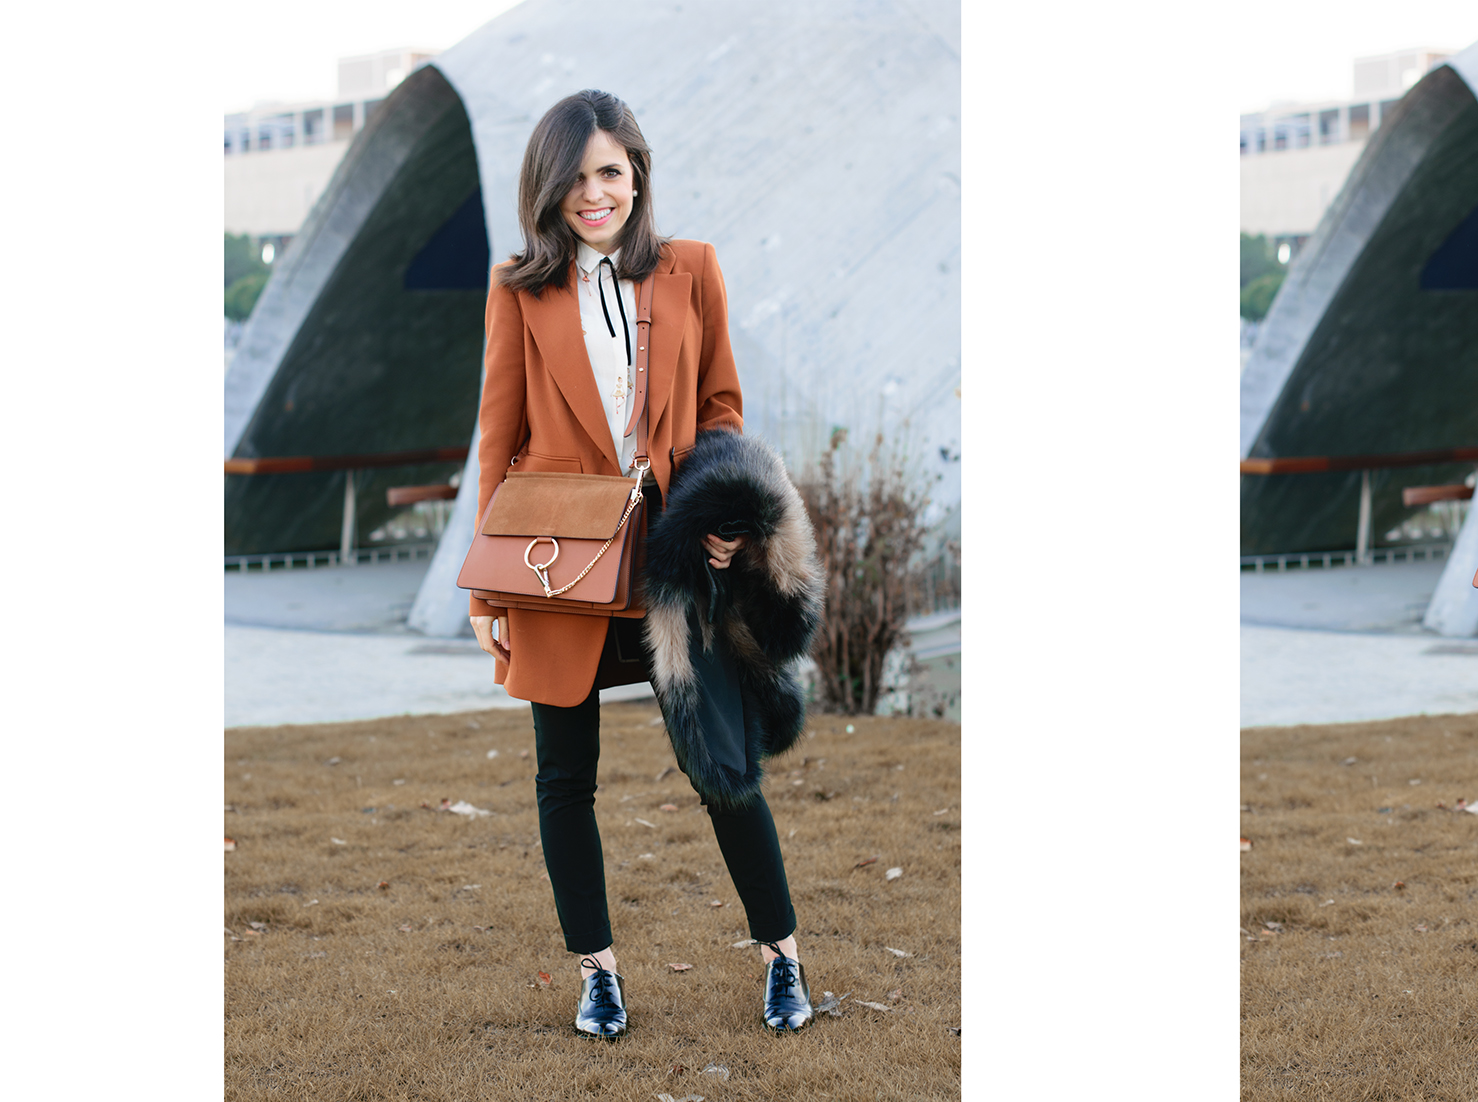 Working look de Zara con bolso Chloe